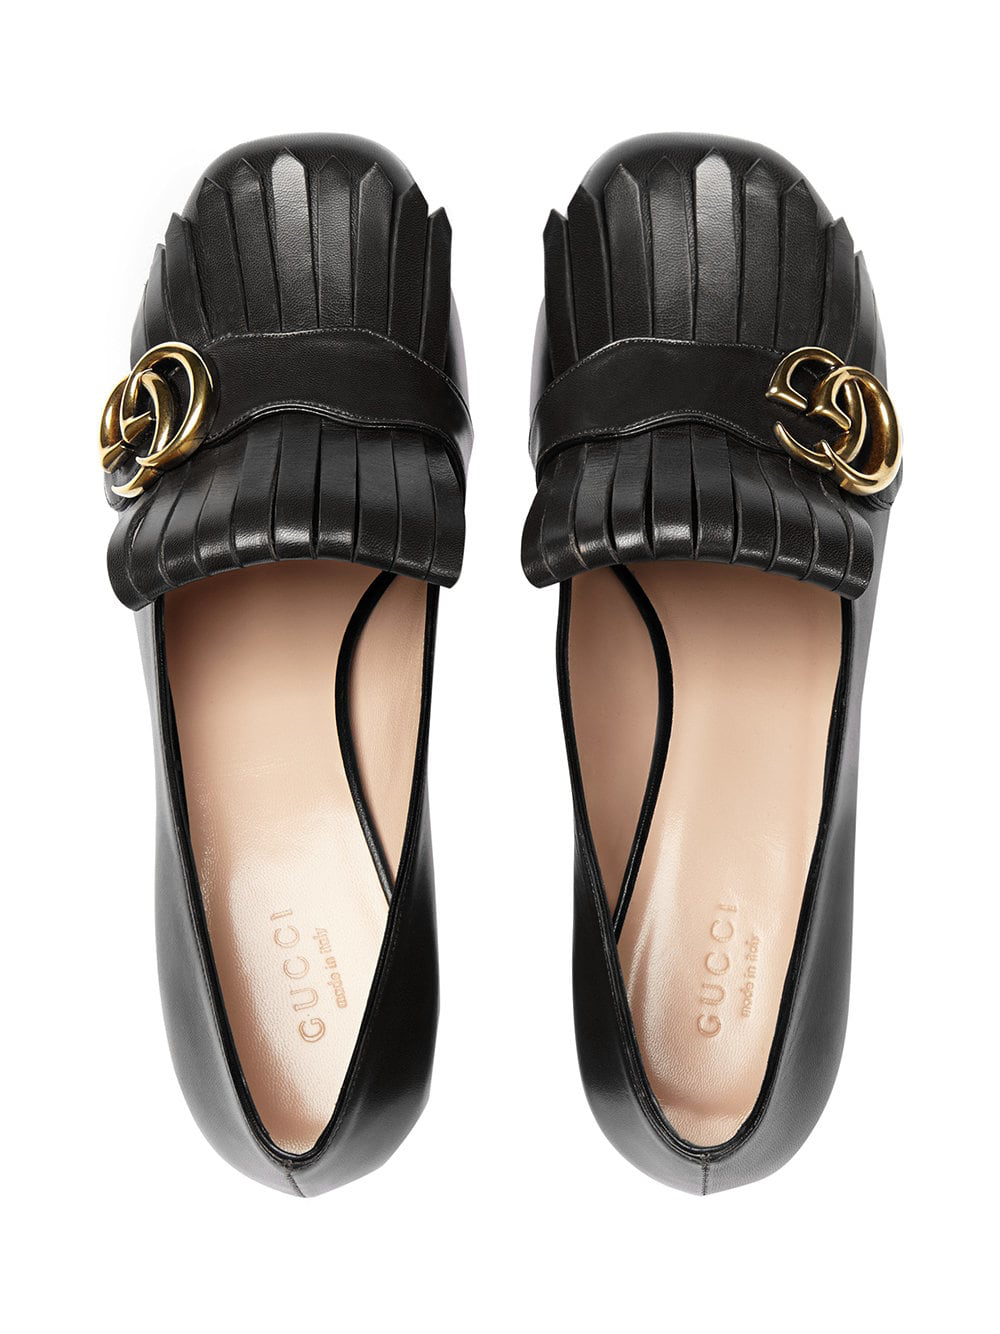 6c07837c59212 Gucci Marmont 55 Leather Mid-Heel Loafers In 1000 Nero